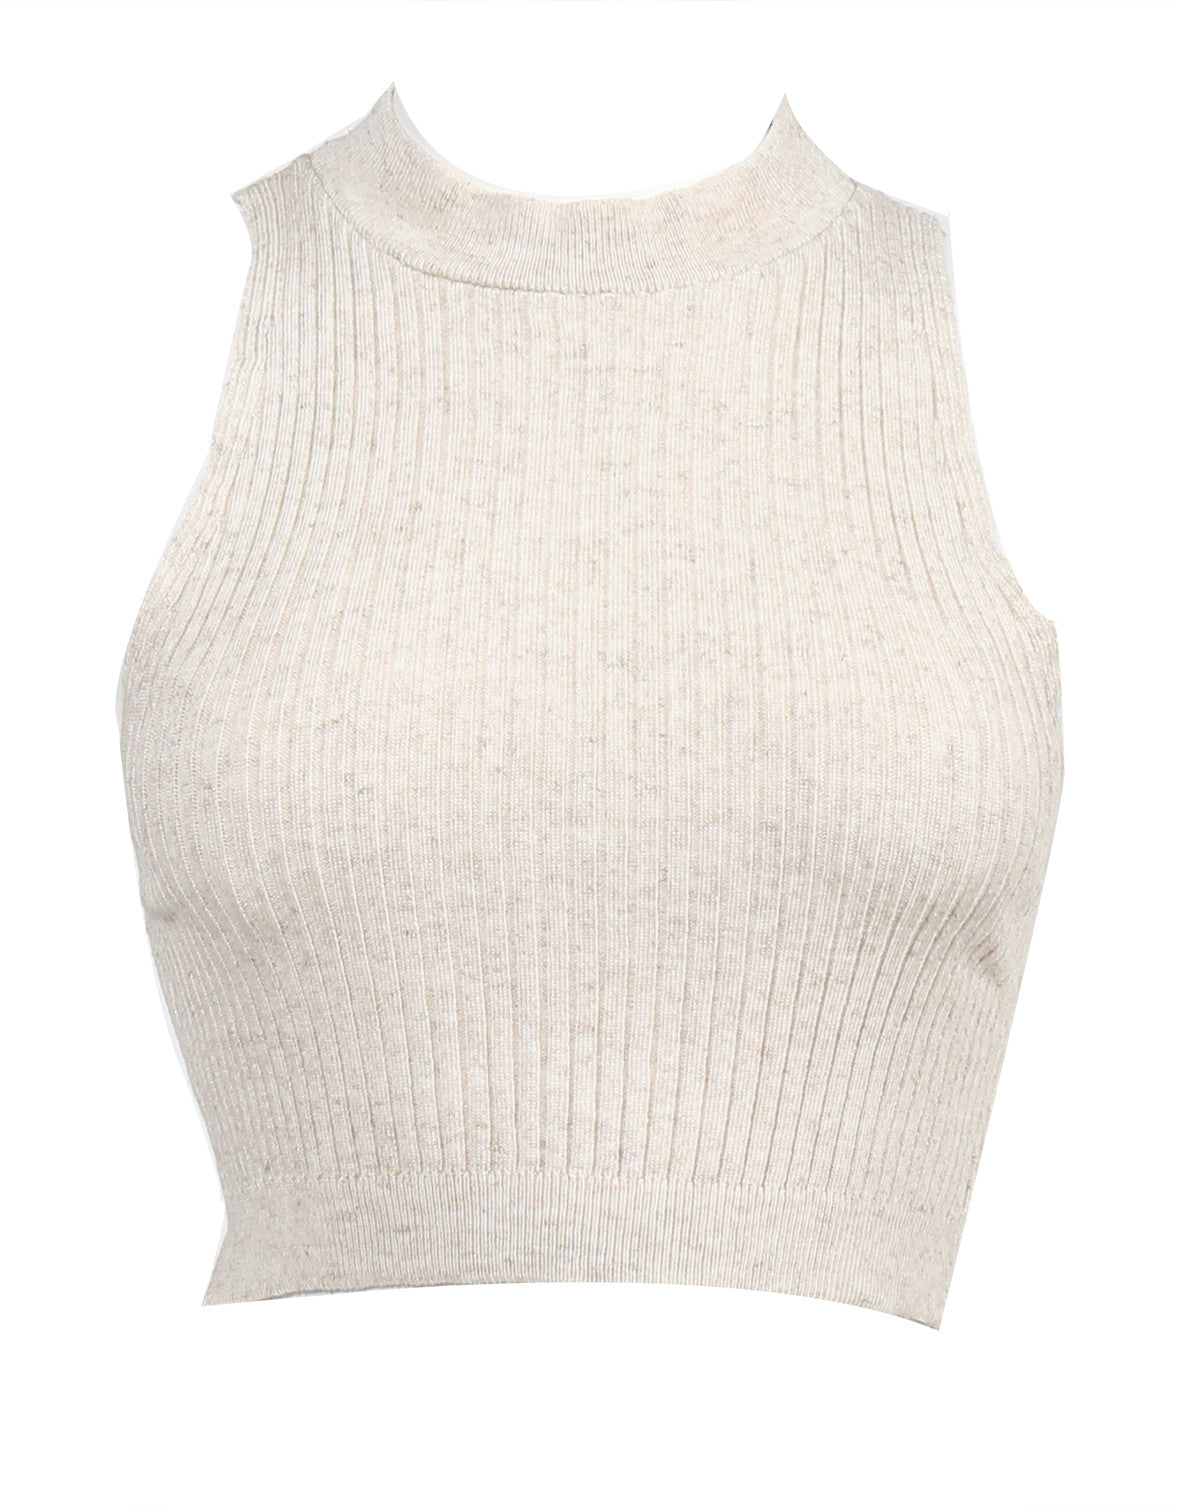 Ribbed Mock Neck Cropped Top - Oatmeal - Large